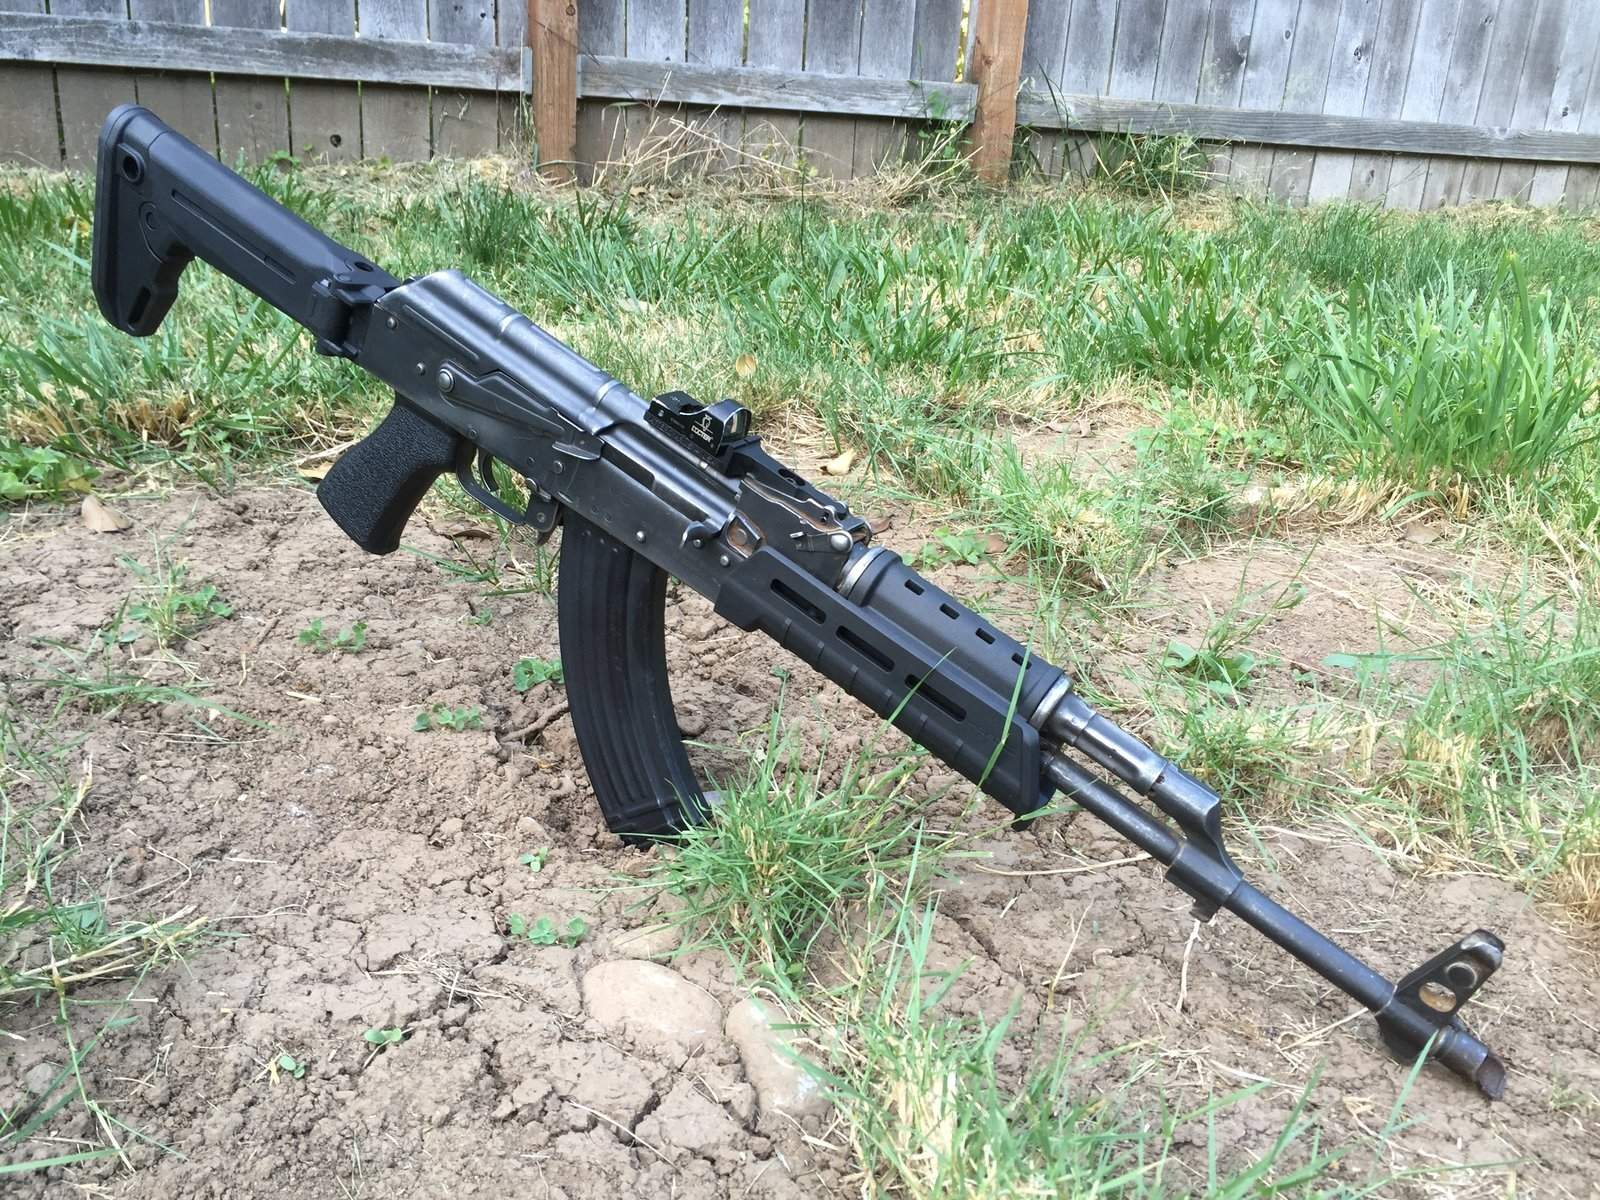 This Is My Favorite AK Stock! Great Price Too.